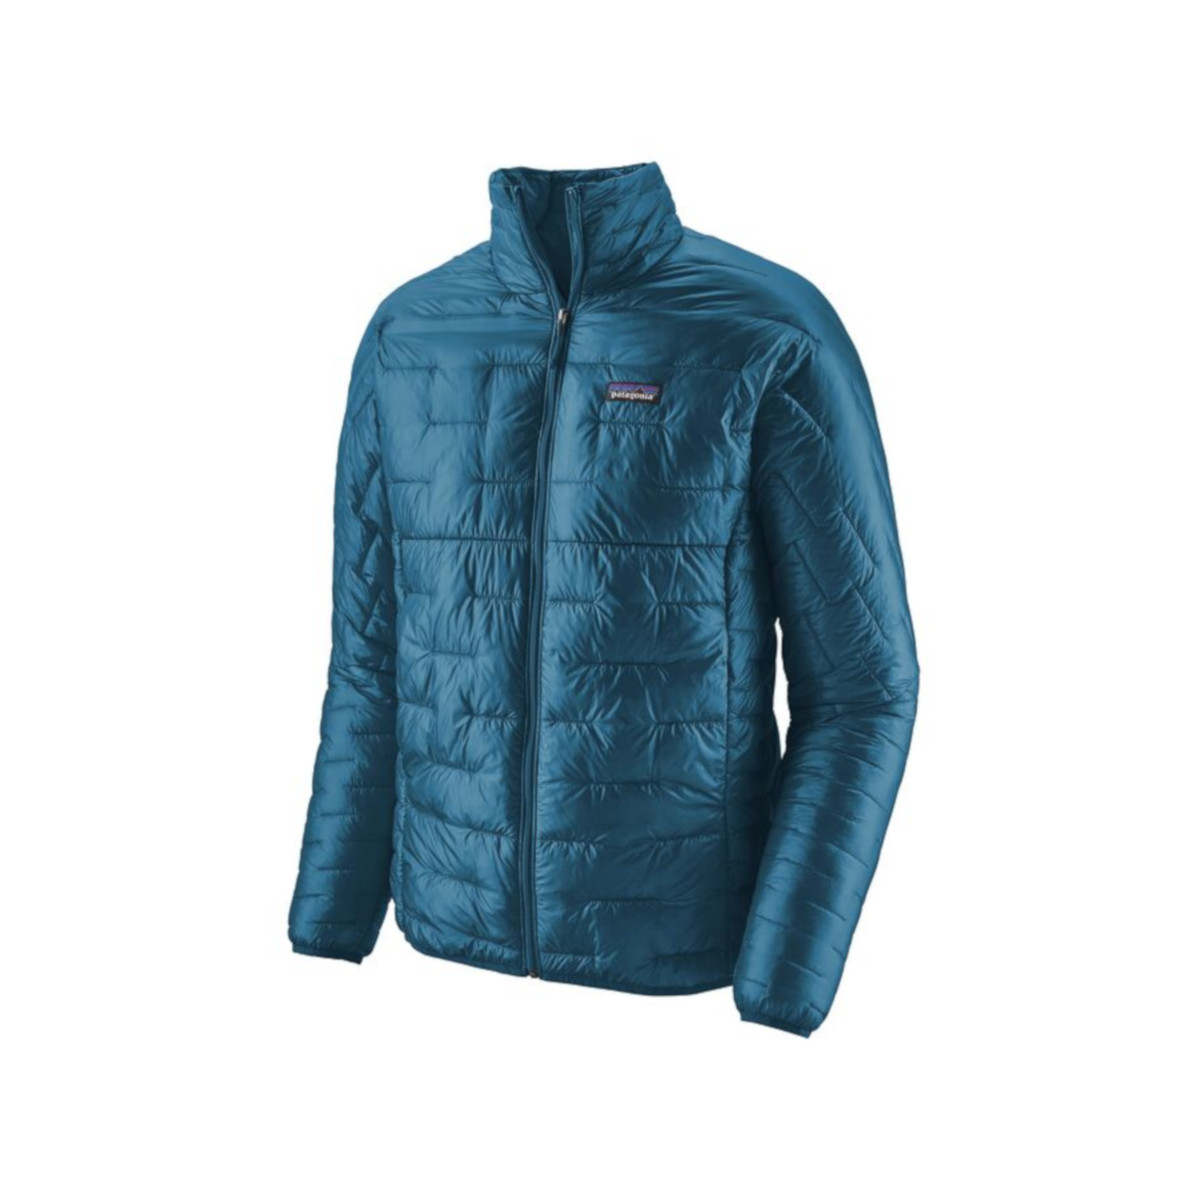 Patagonia Micro Puff hoody jacket: gear review | Escapism